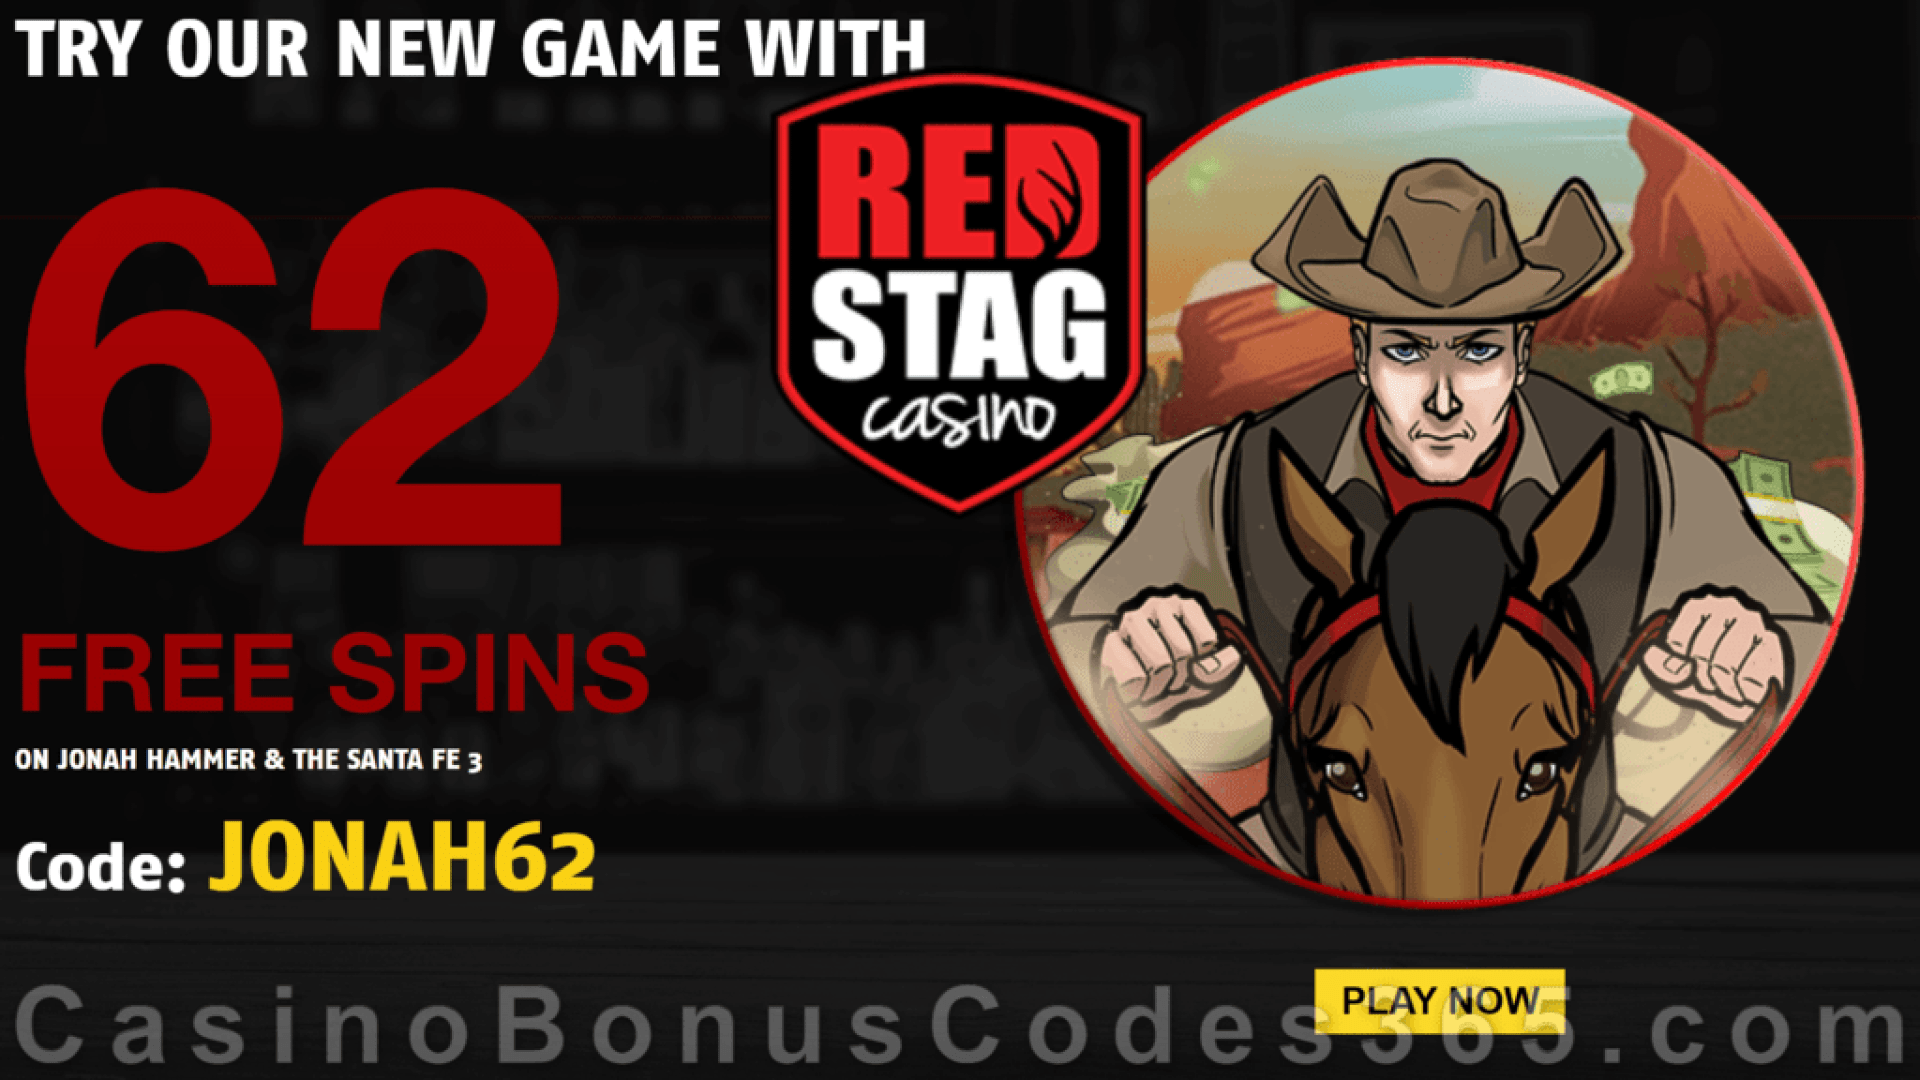 Red Stag Casino 62 FREE Spins on Jonah Hammer New WGS Game Special No Deposit Welcome Deal